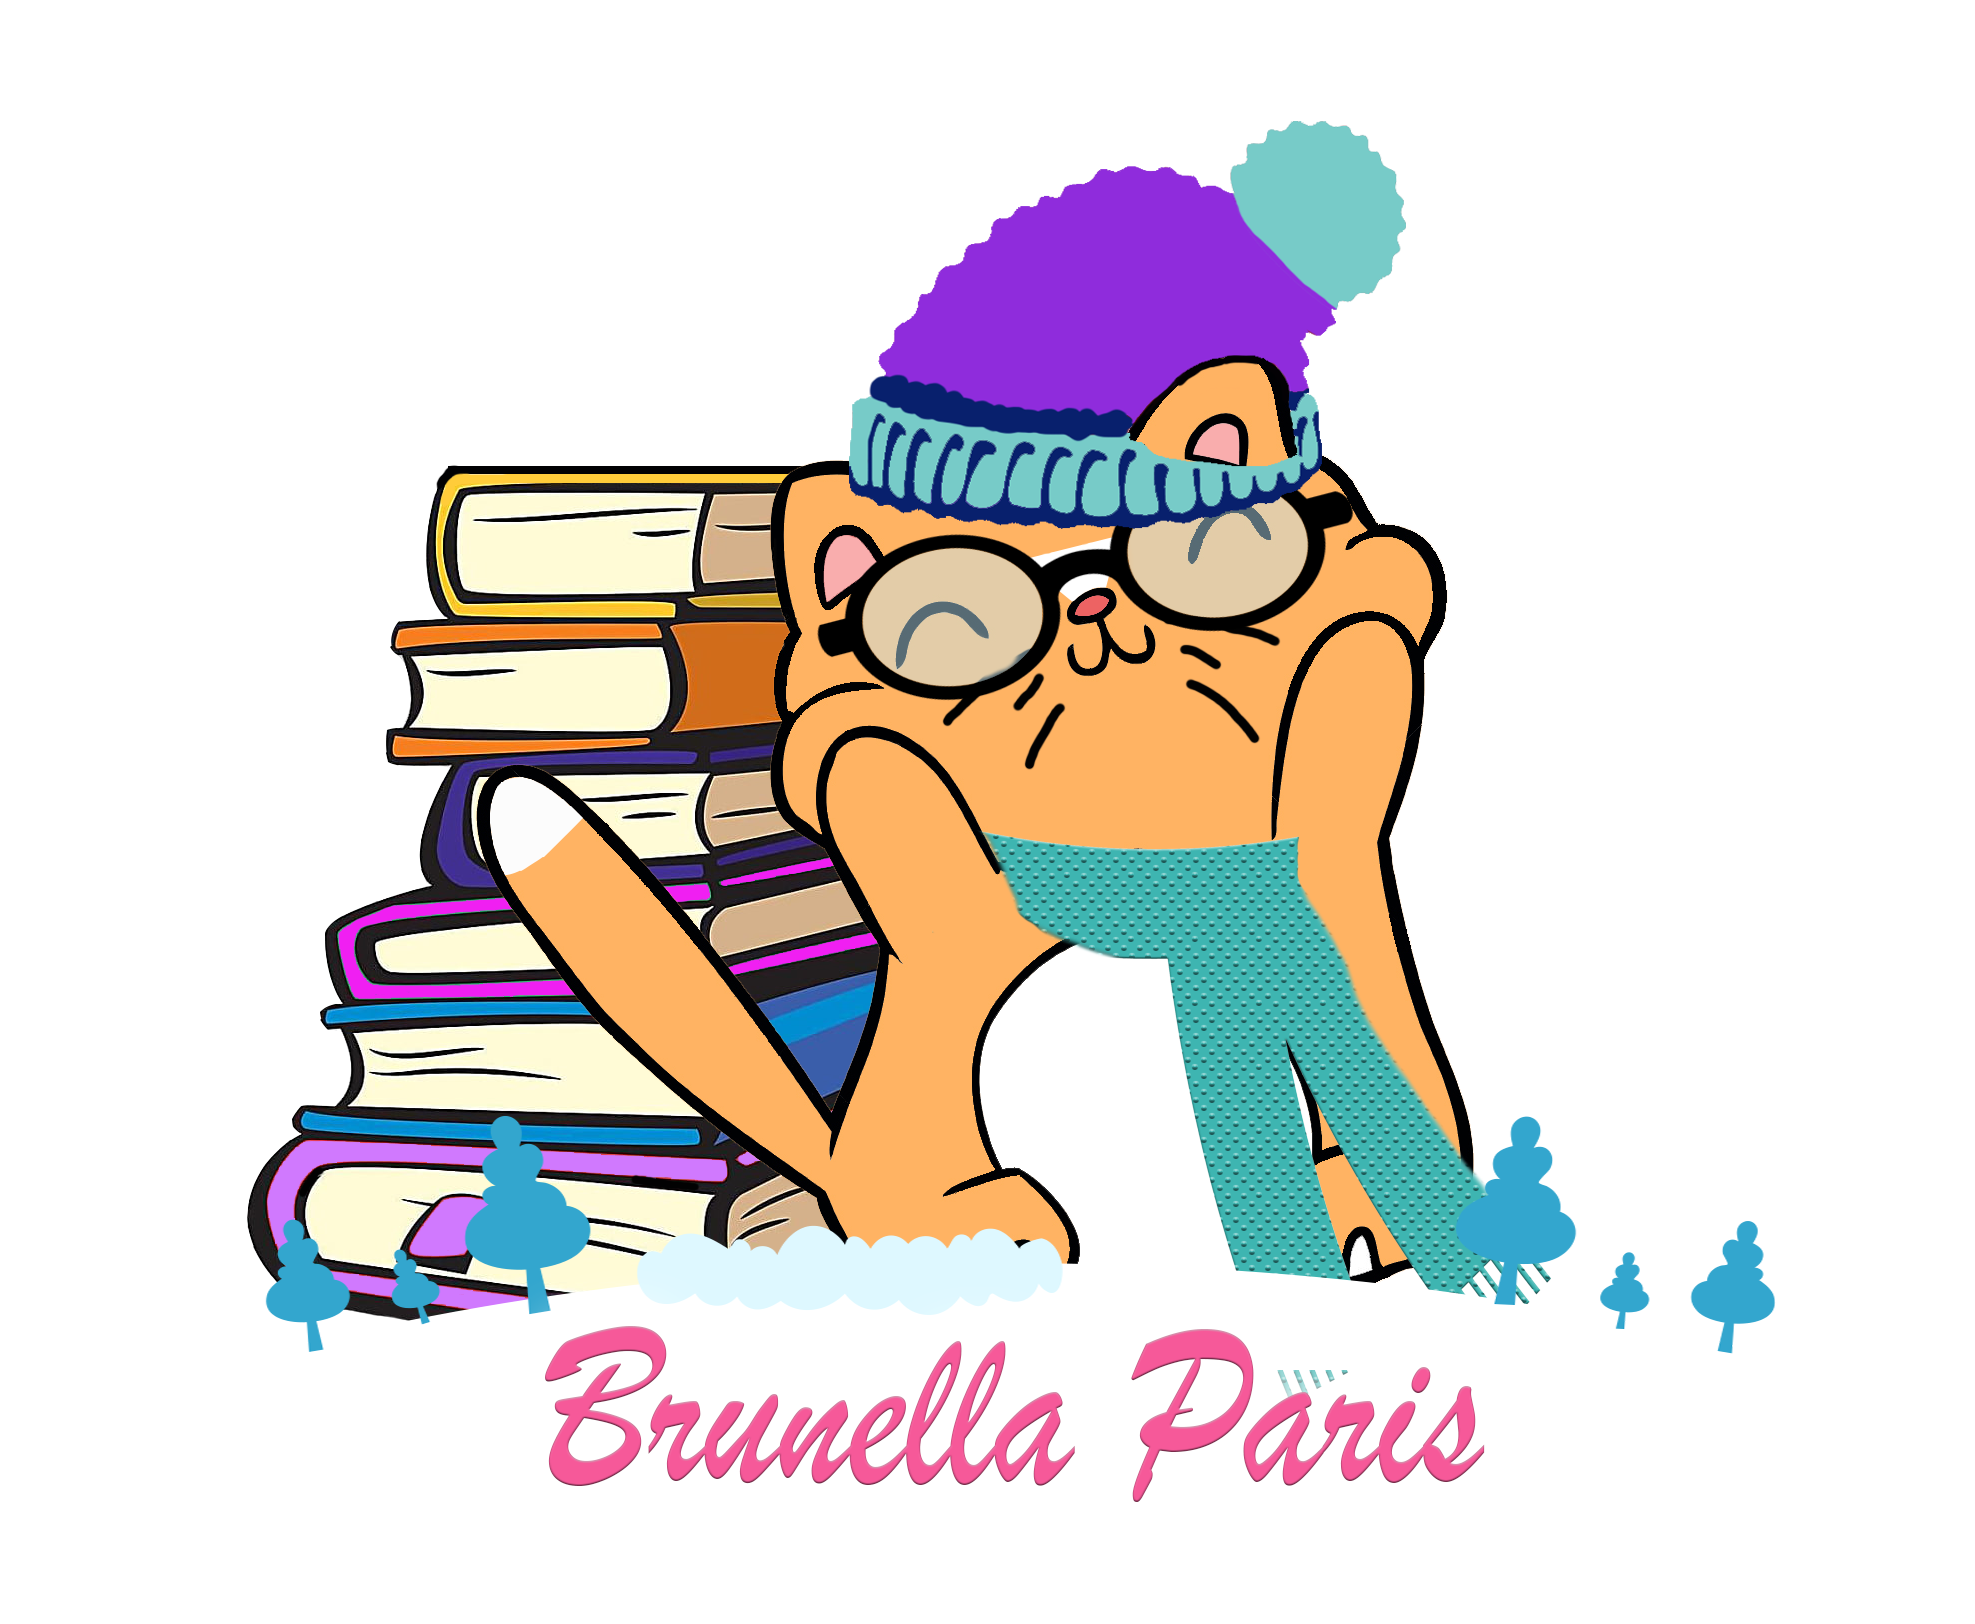 Brunella Paris